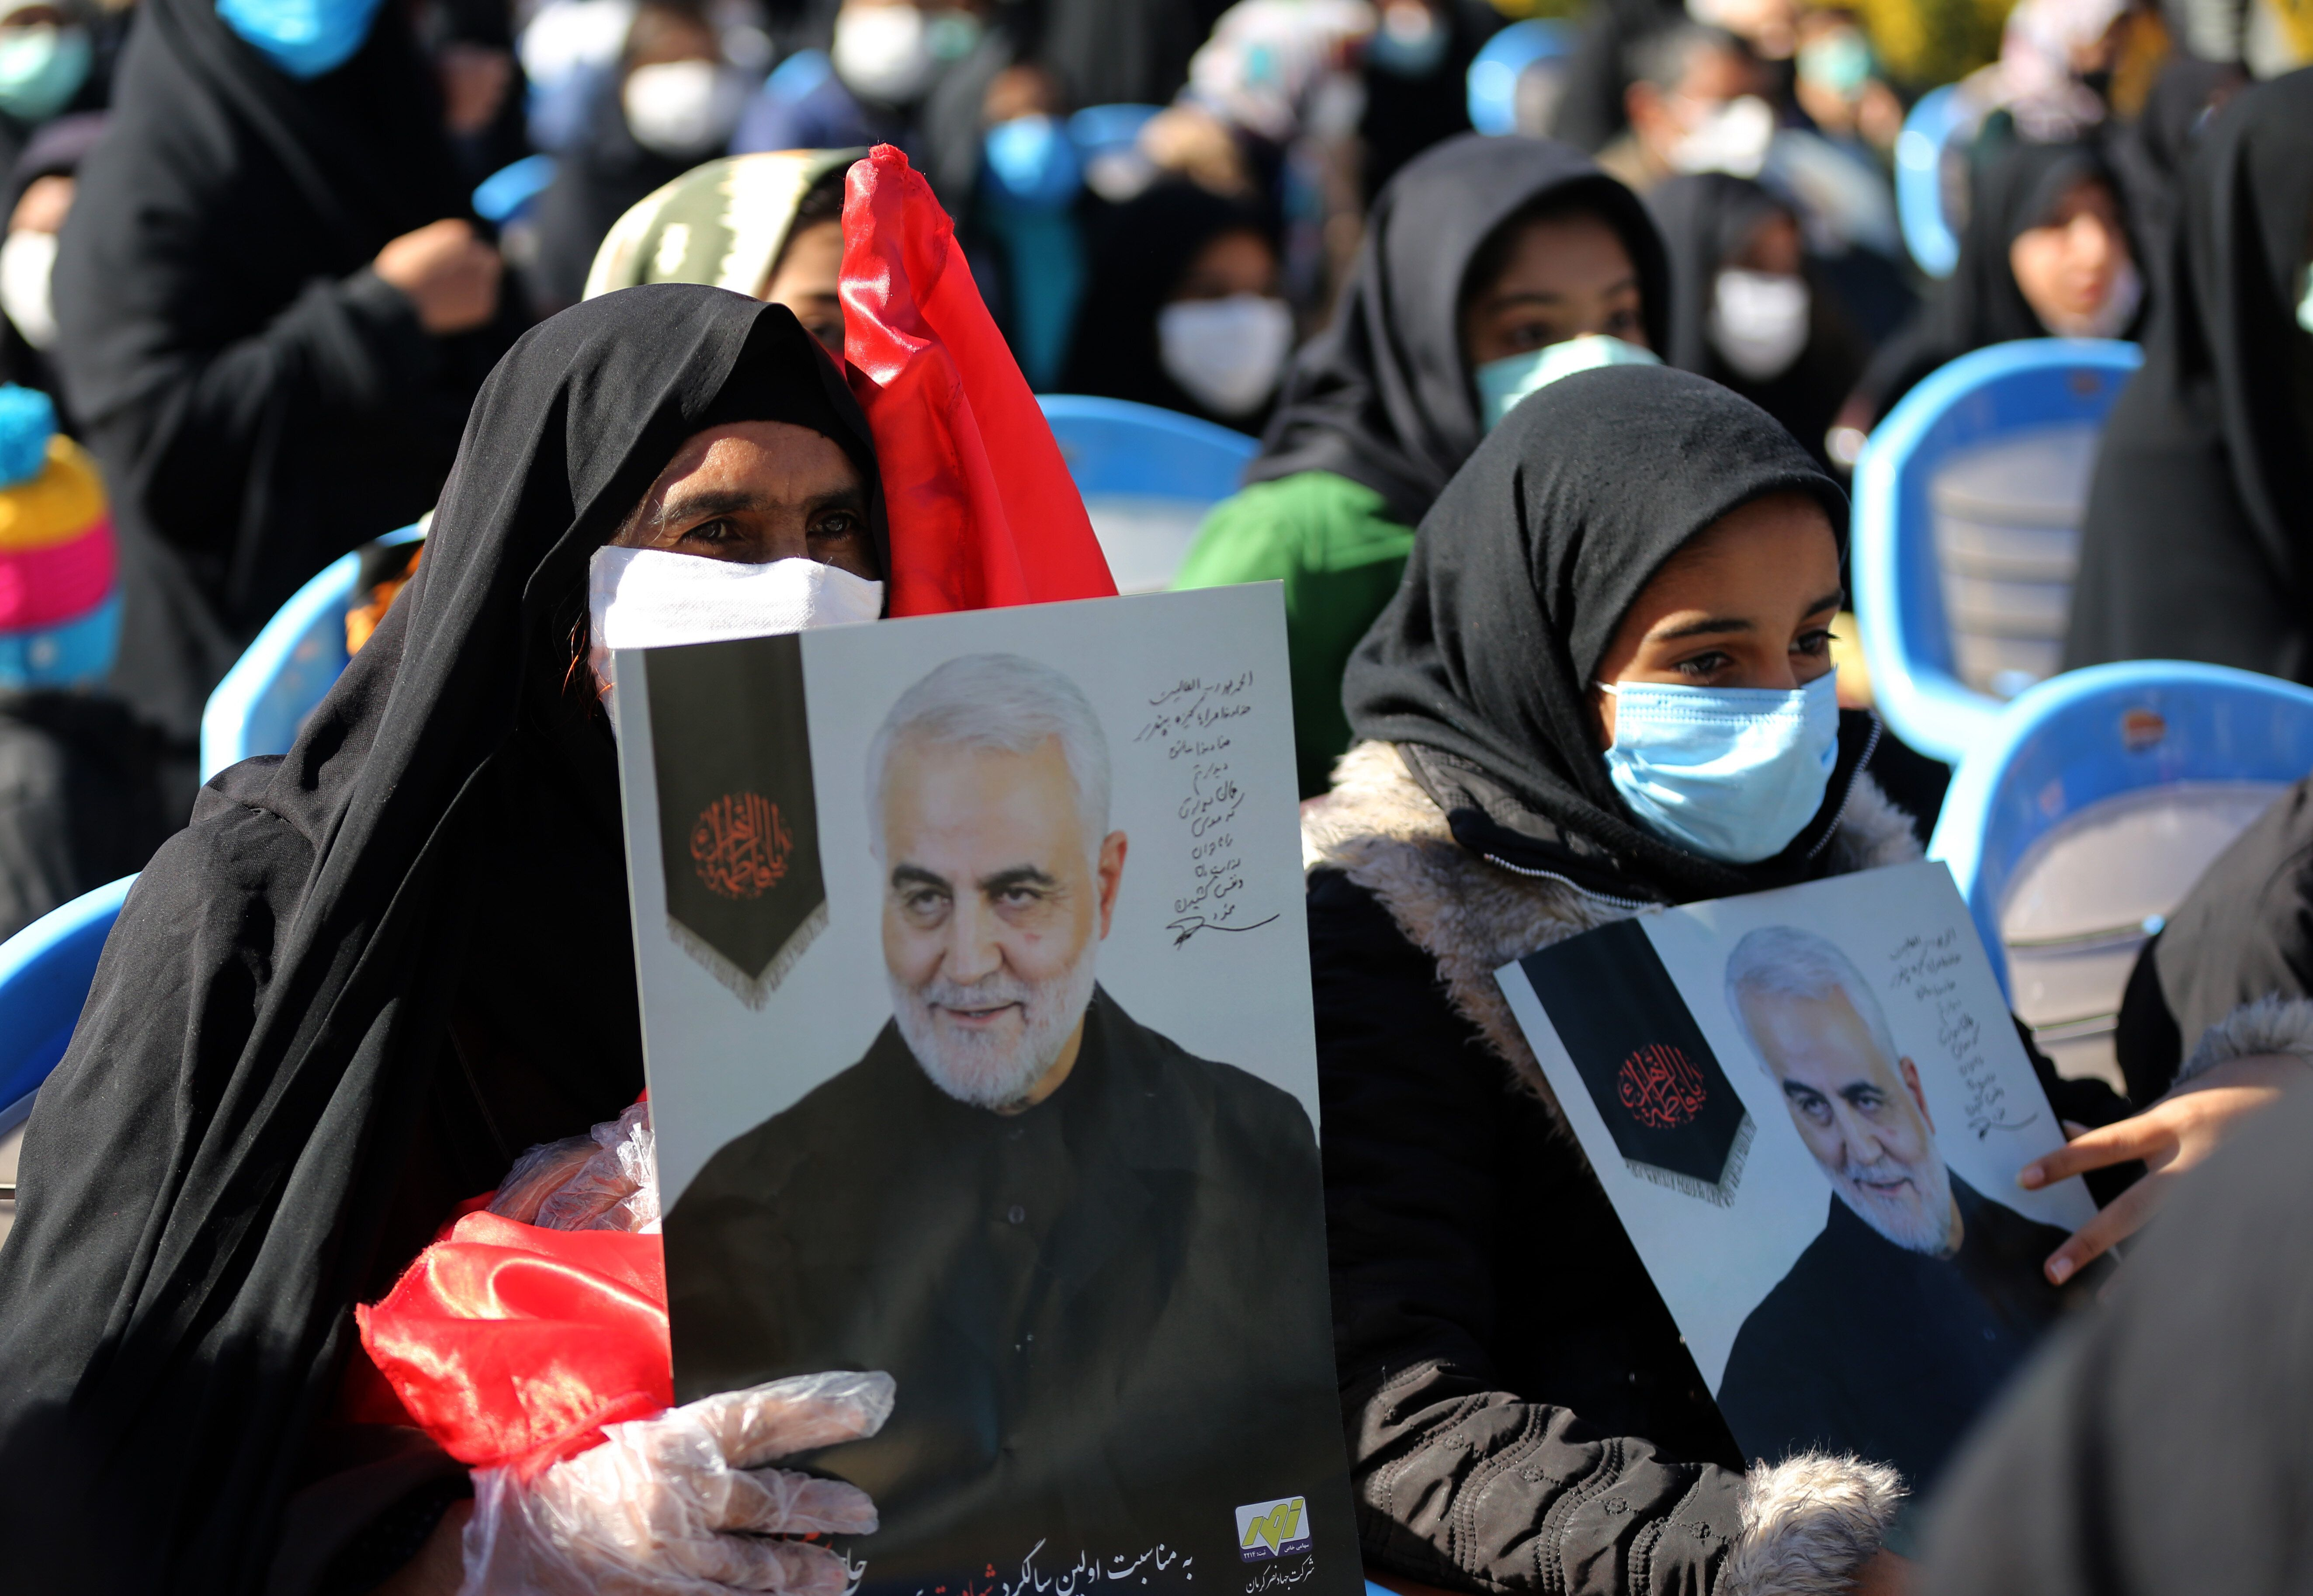 People attend a ceremony in Iran on Saturday to commemorate the first anniversary of the death of Qassem Soleimani.